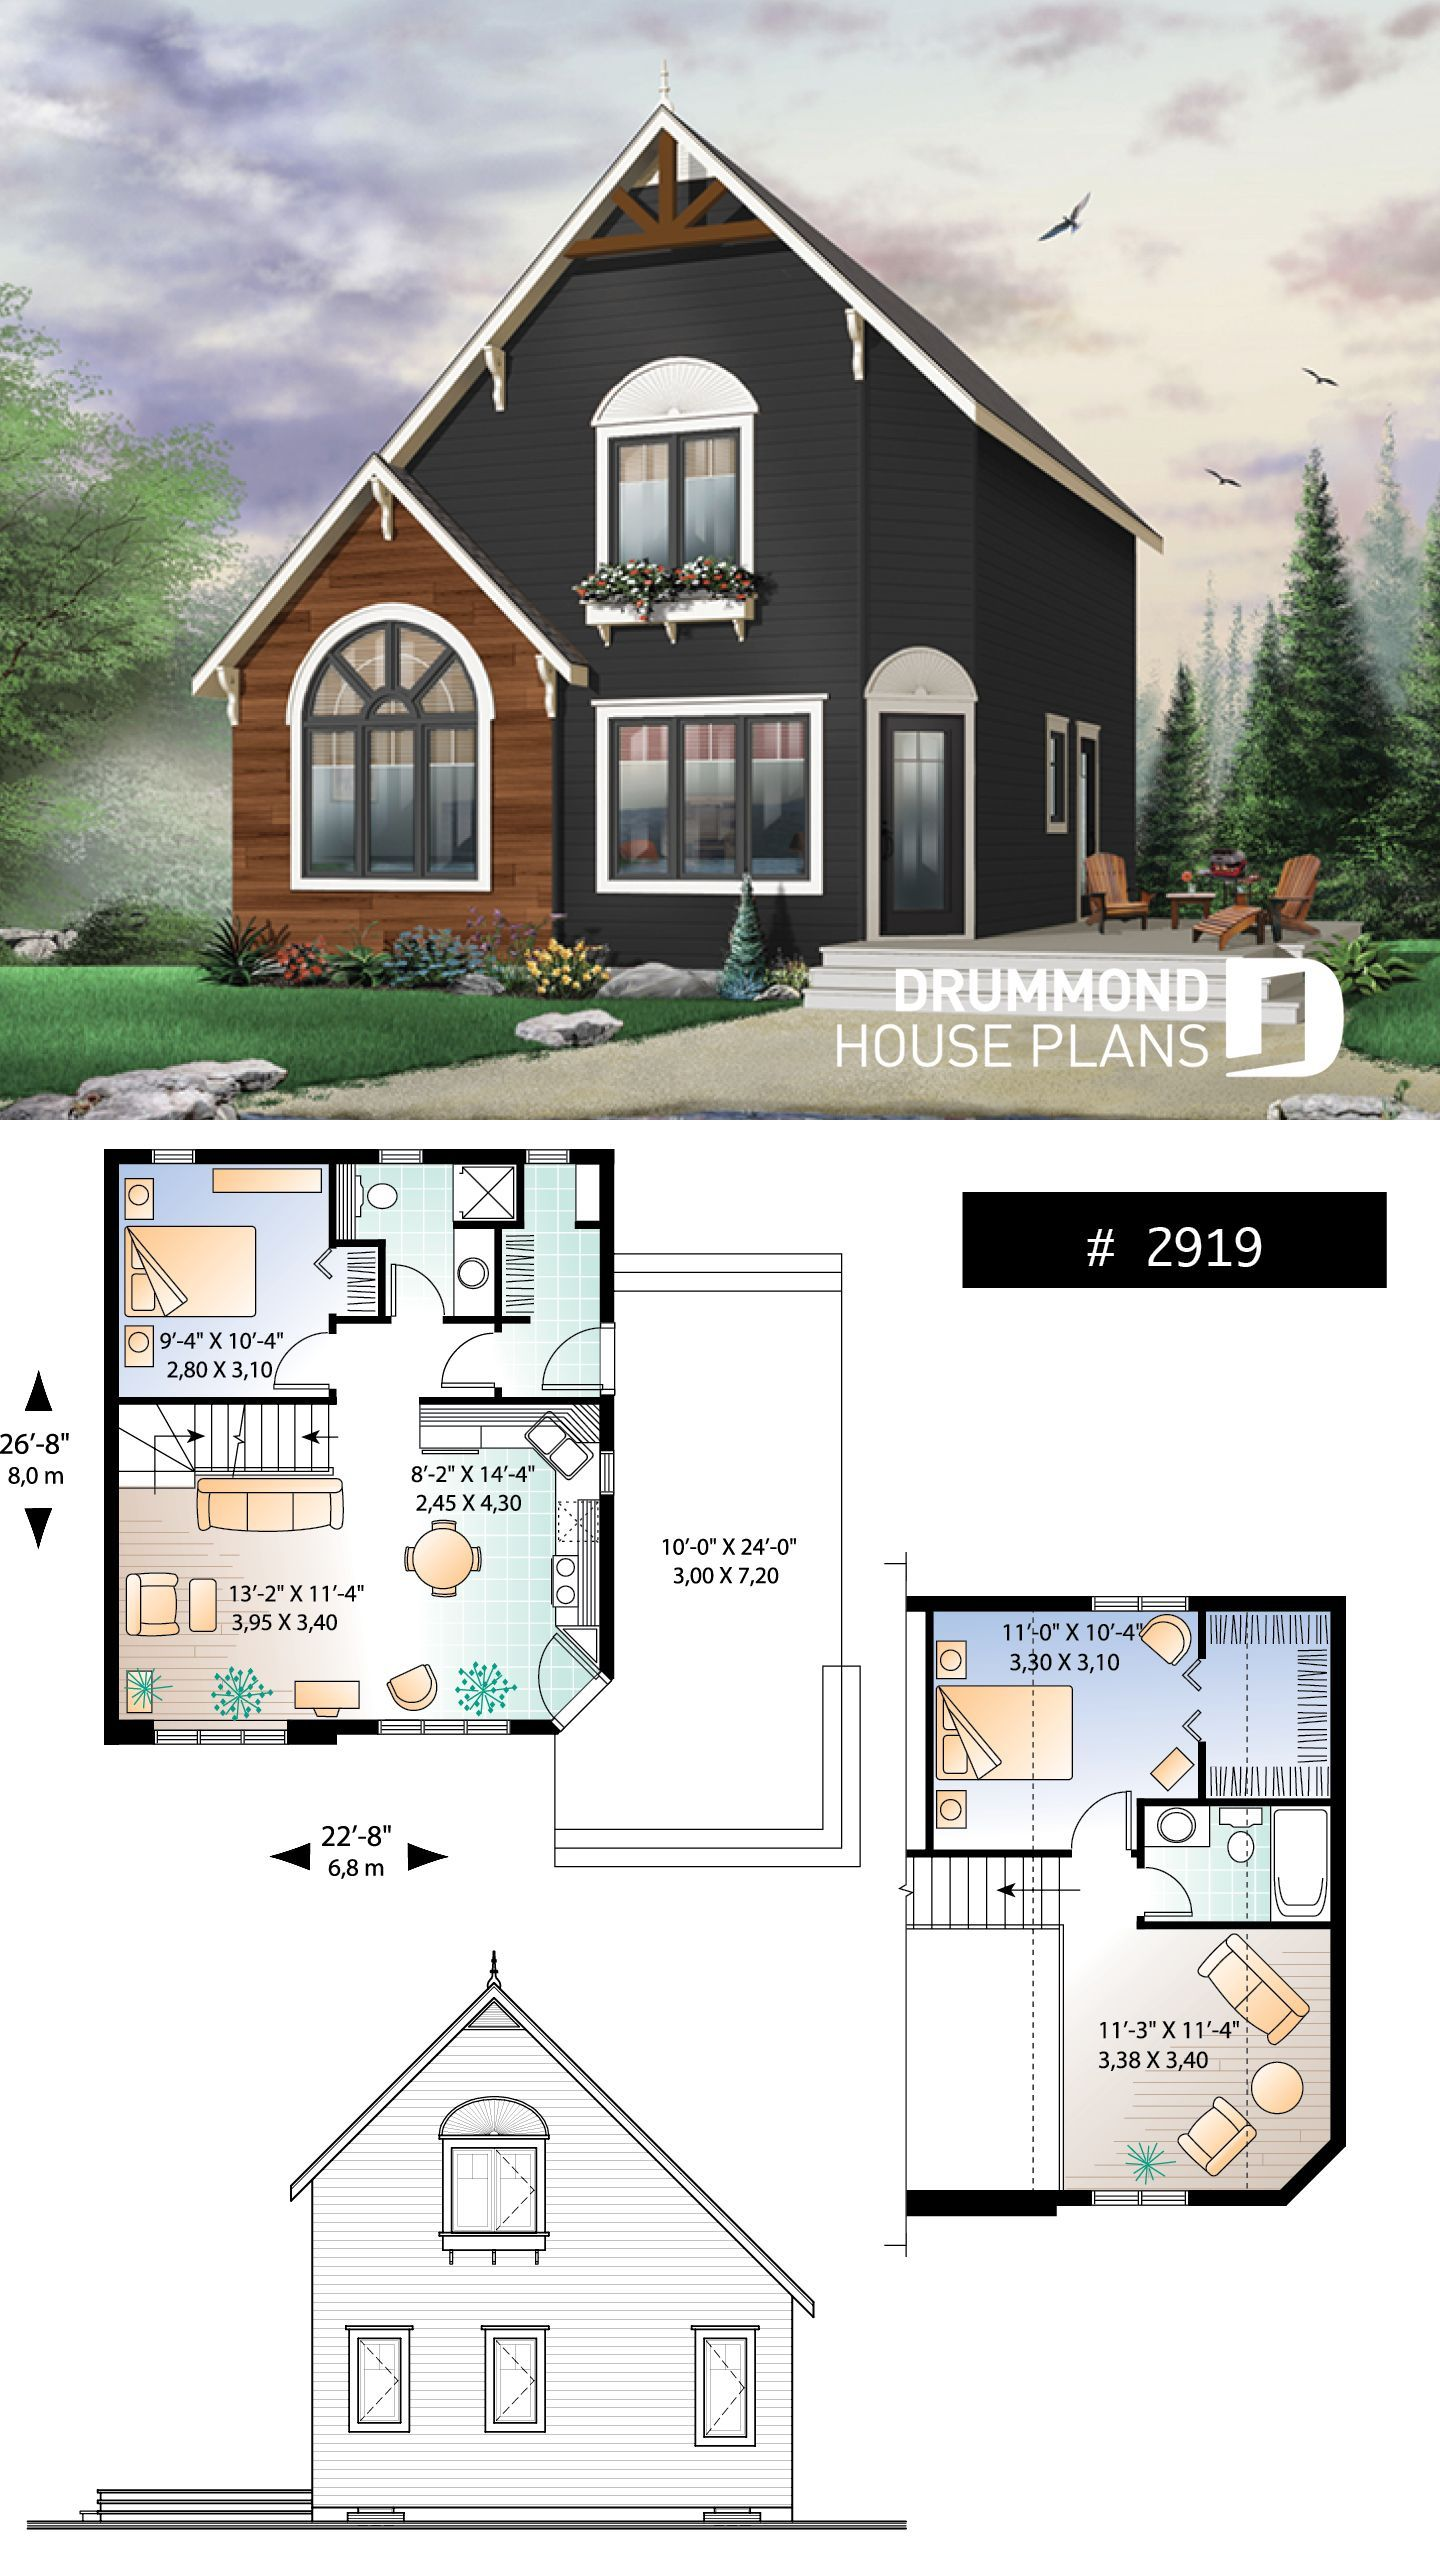 Discover the plan 2919 The Woodlette 1 which will please you for its 2 3 bedrooms and for its Transitional styles